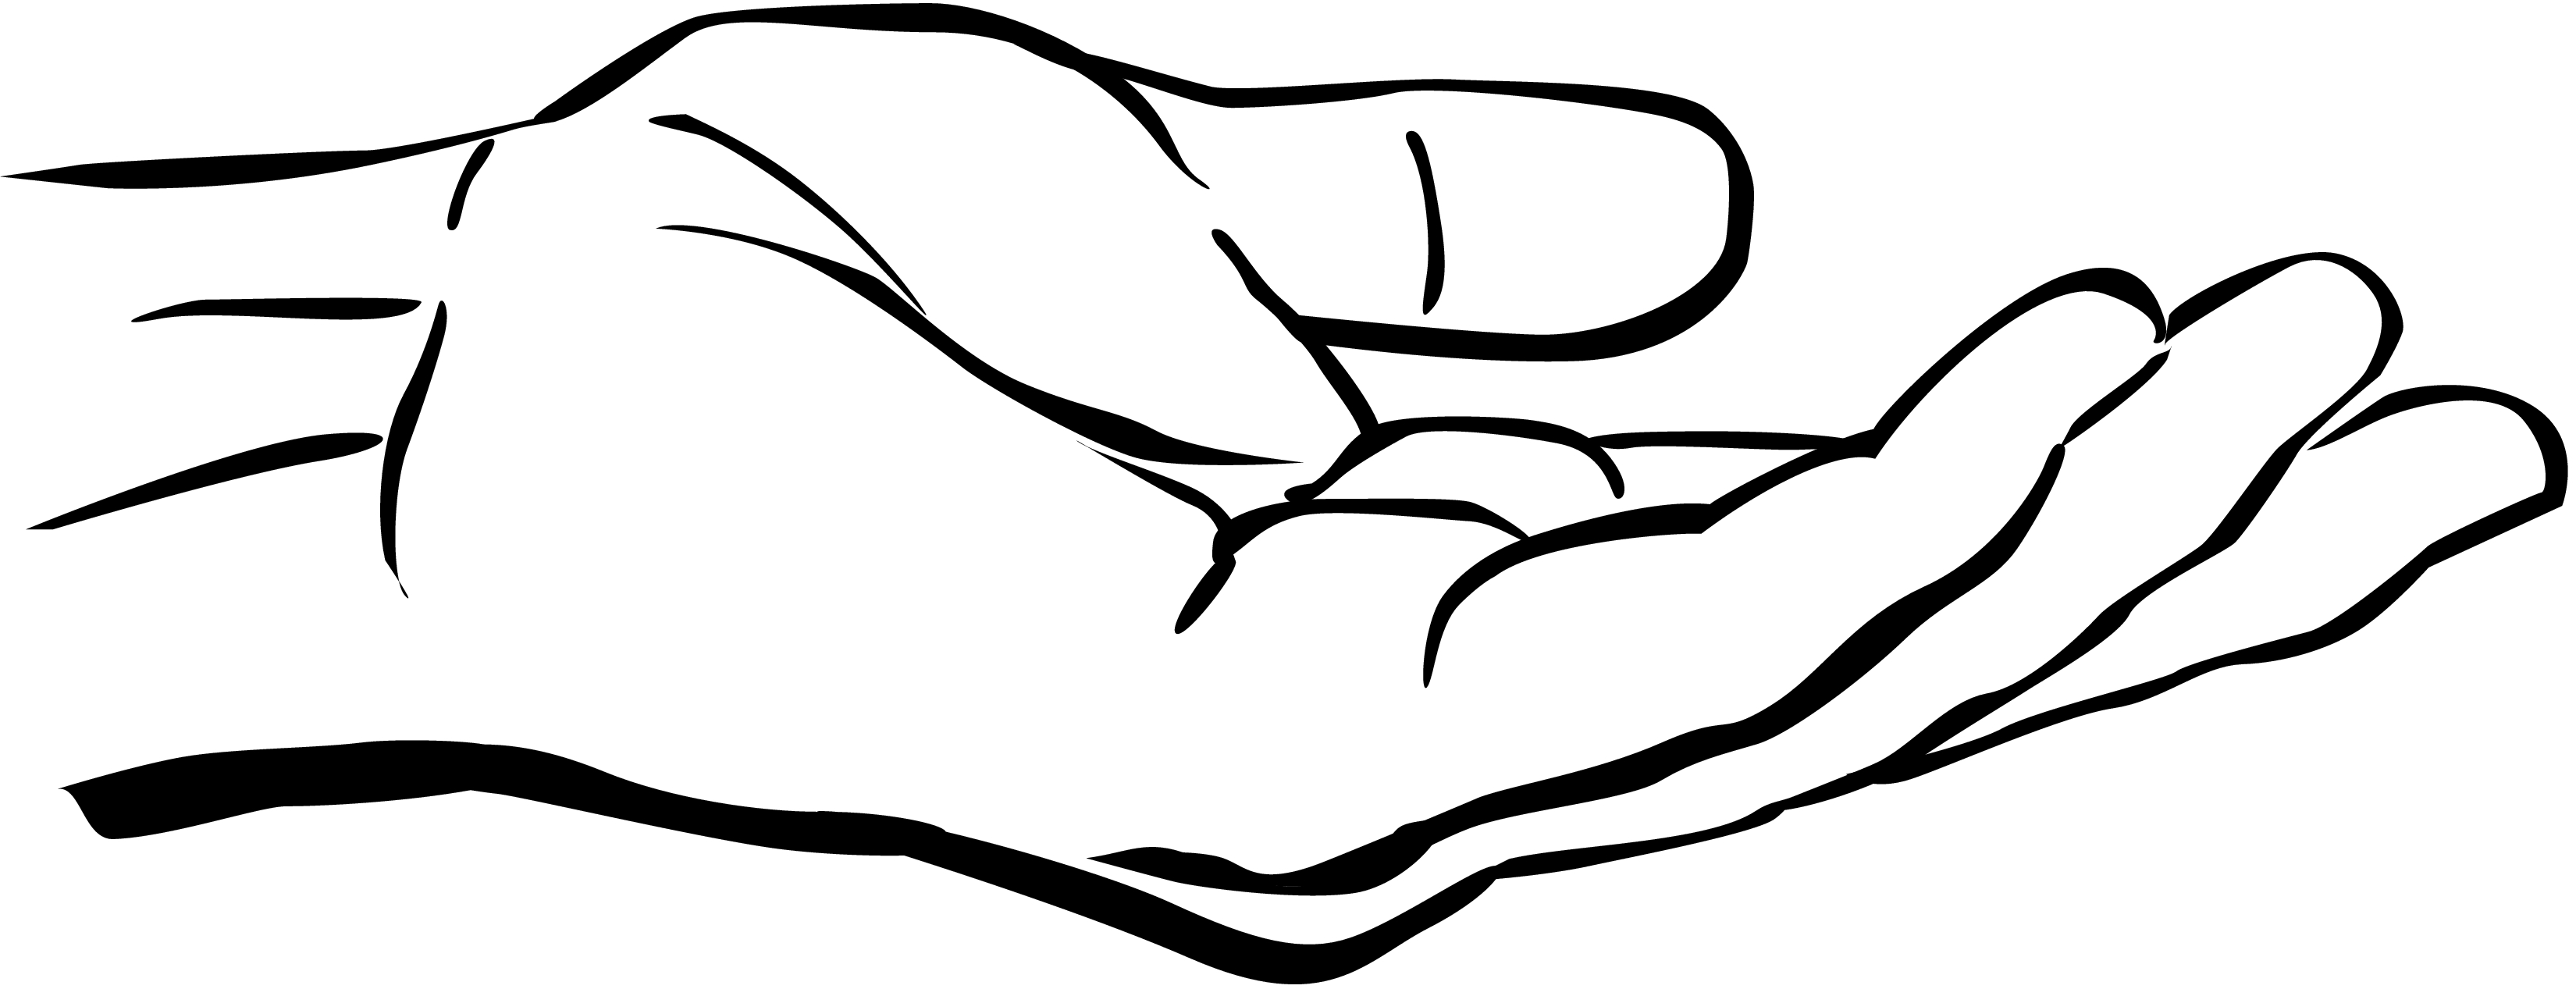 Hand Images Free.